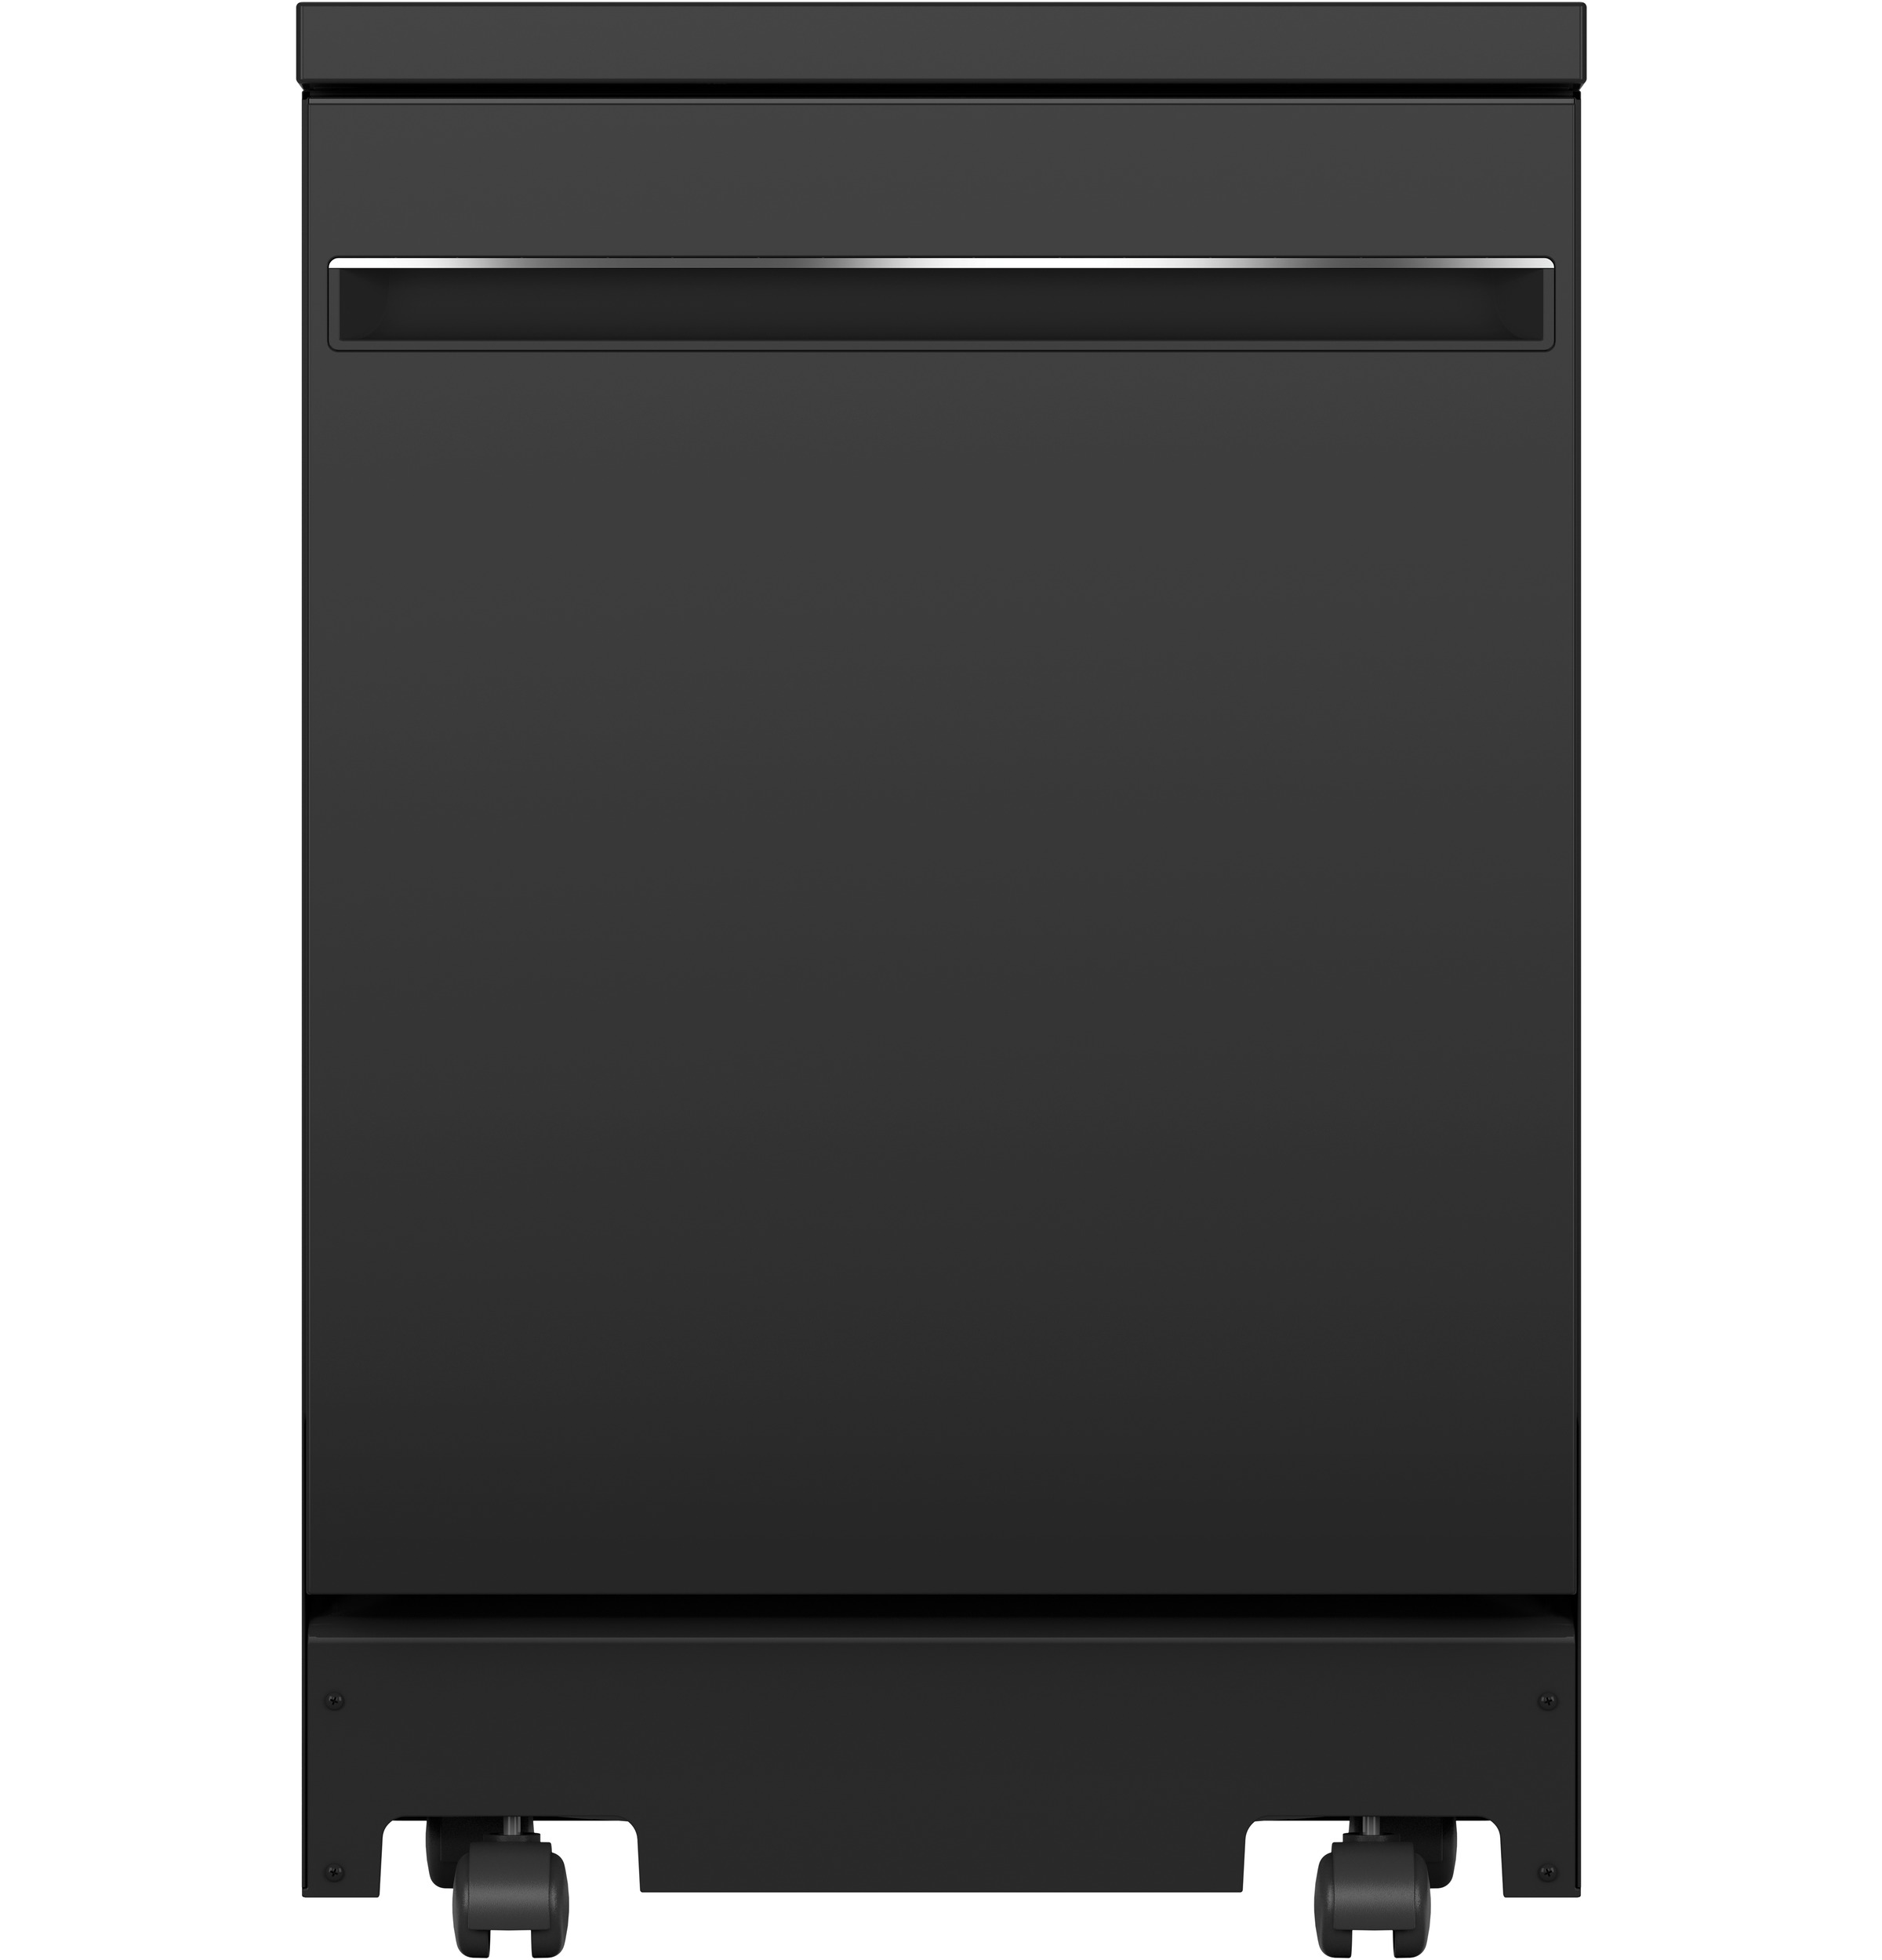 "Model: GPT225SGLBB | GE GE® 24"" Stainless Steel Interior Portable Dishwasher with Sanitize Cycle"